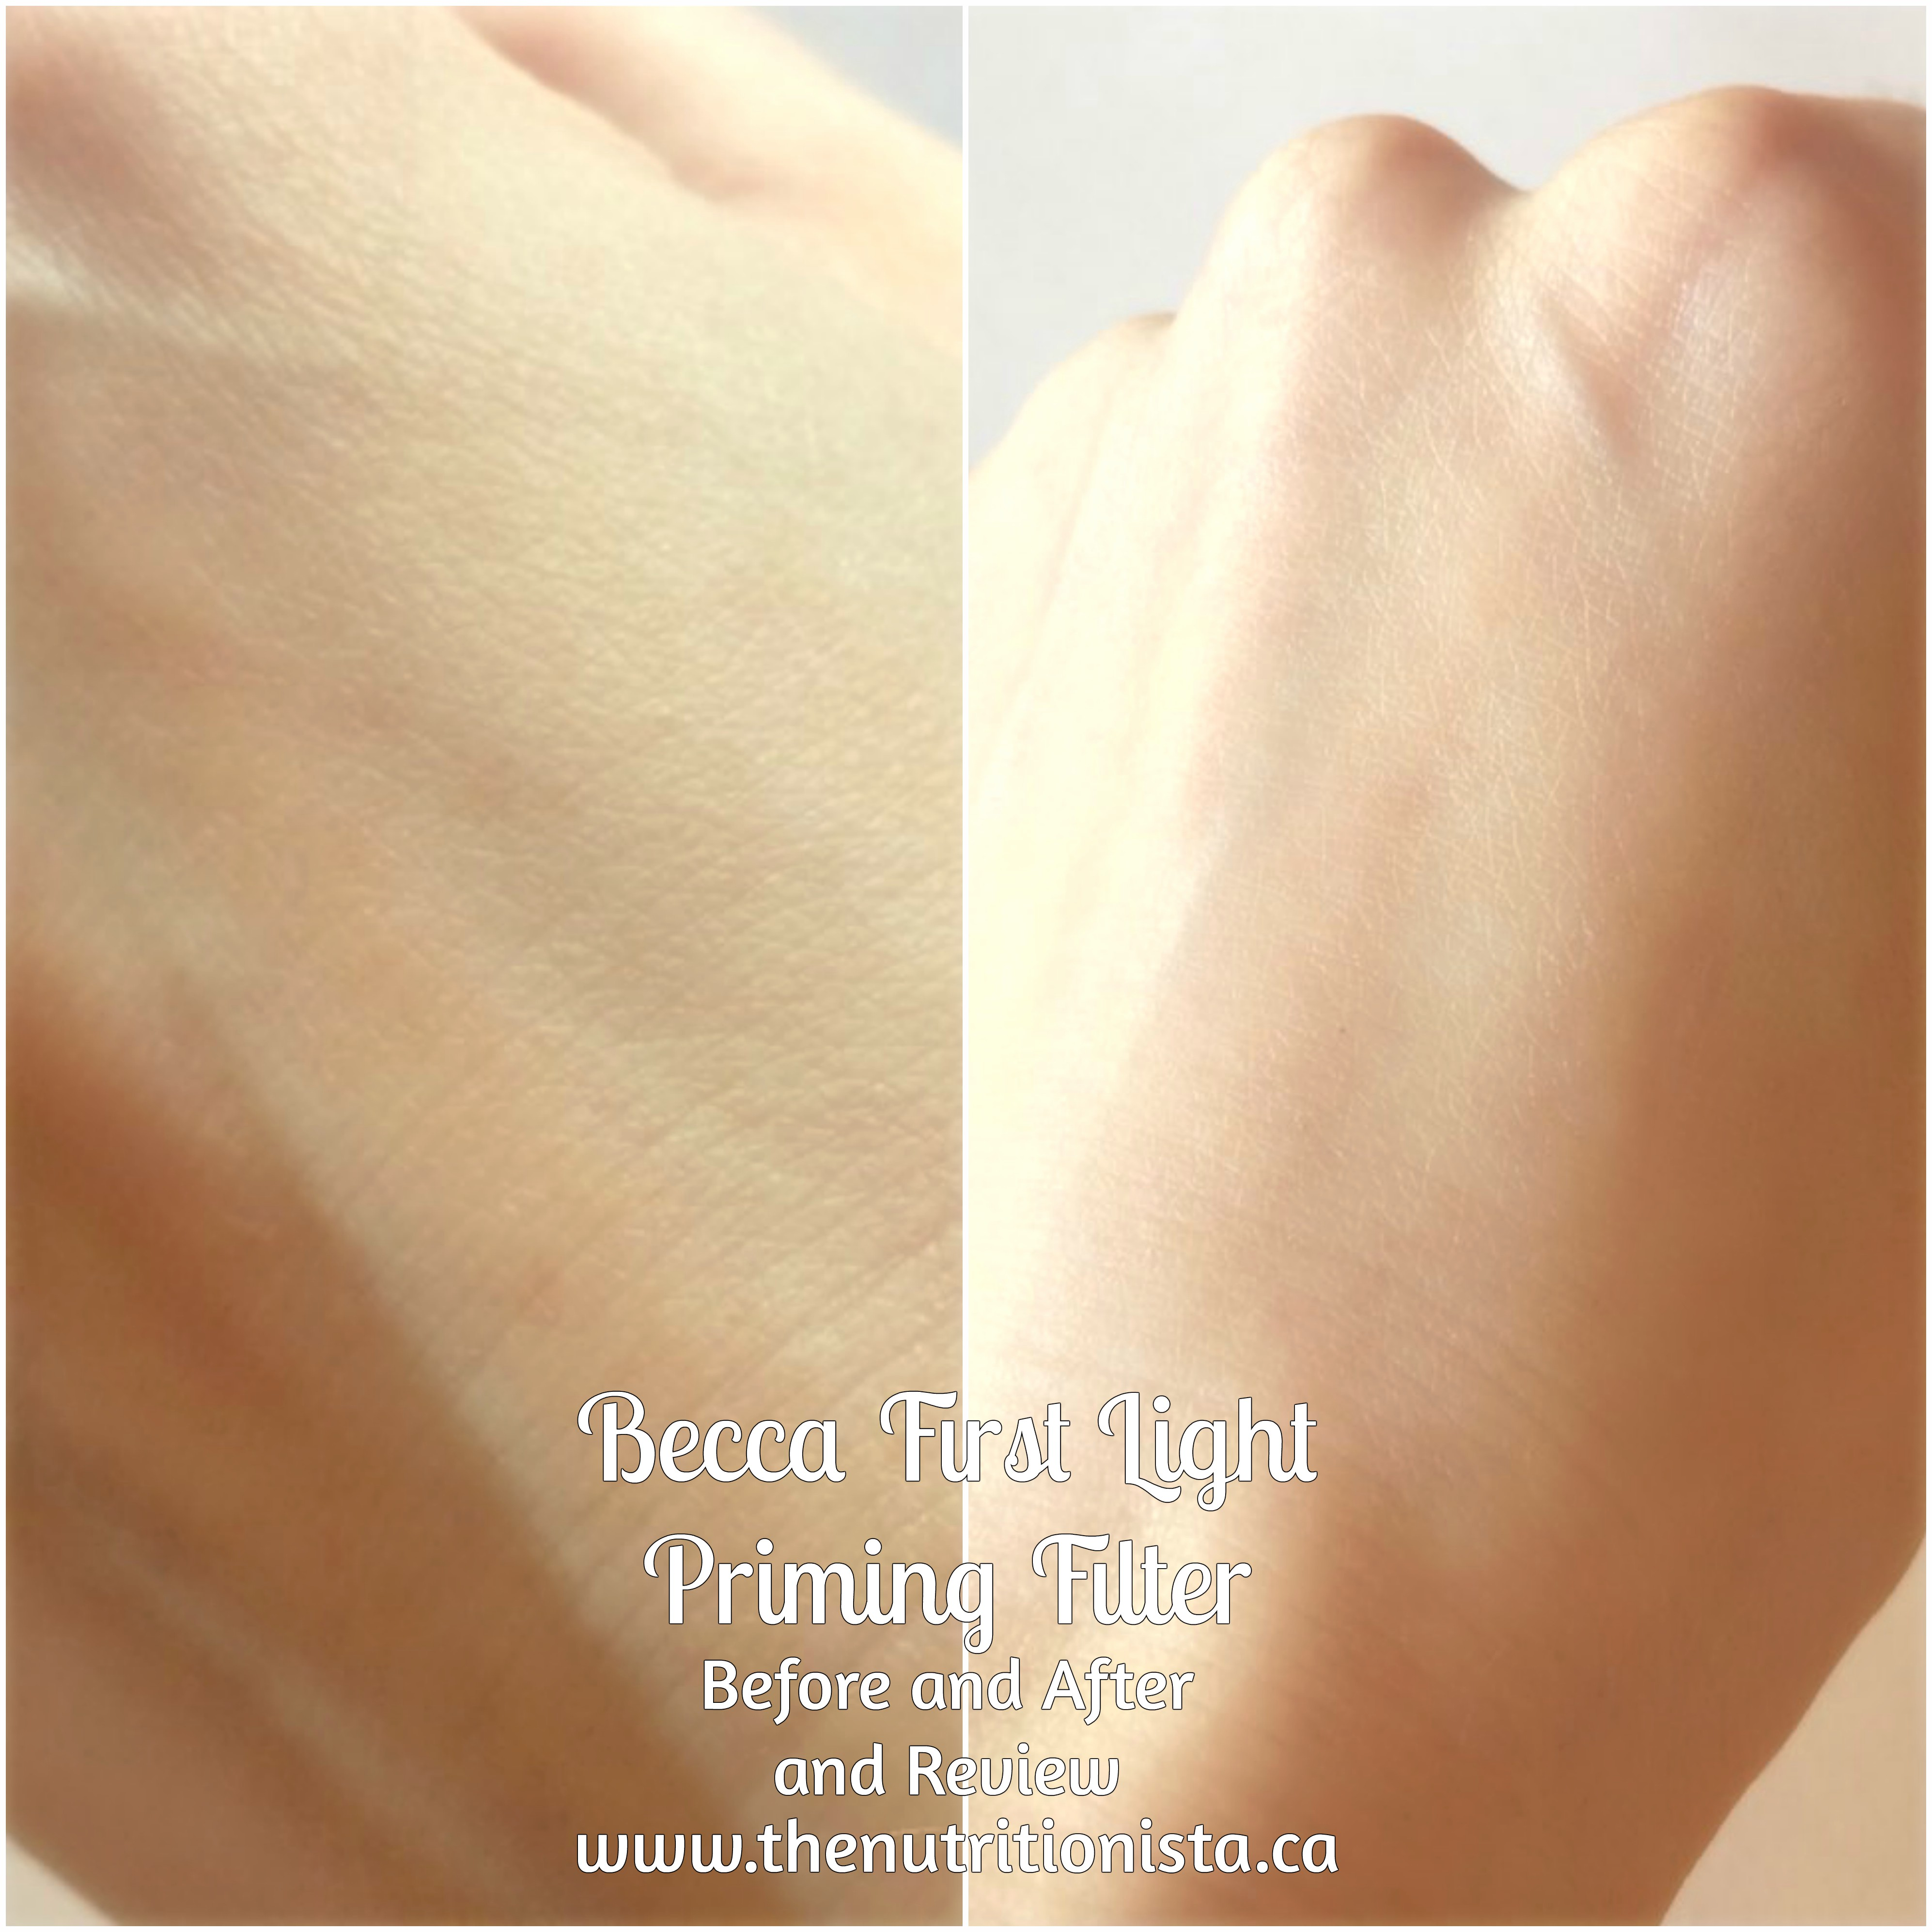 Becca First Light Priming Filter review and before and after pics, Via @bcnutritionista